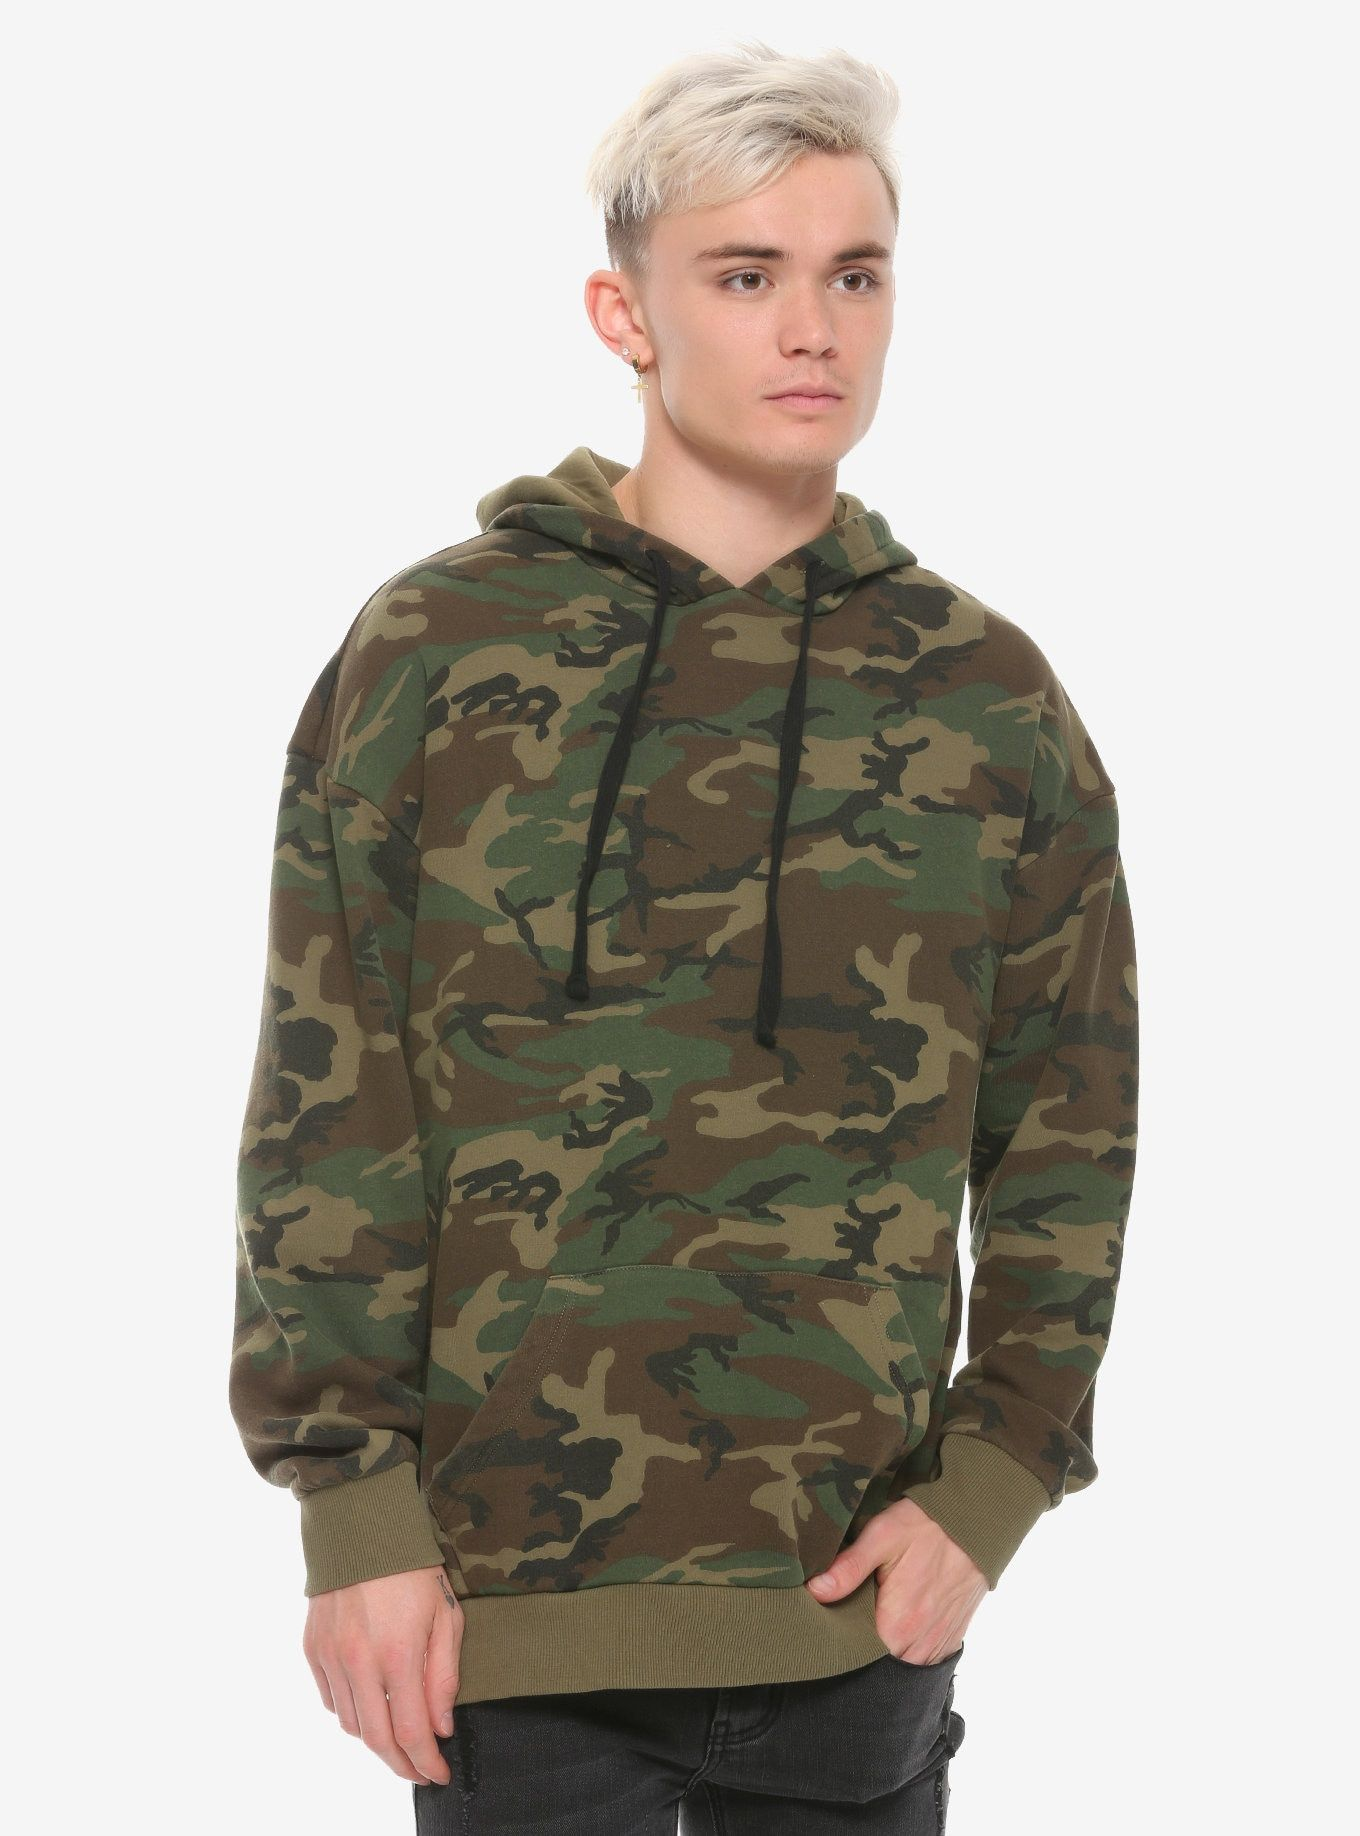 efb34a3a93484 This hoodie - you have to not see it to believe it! // Green Camo Hoodie